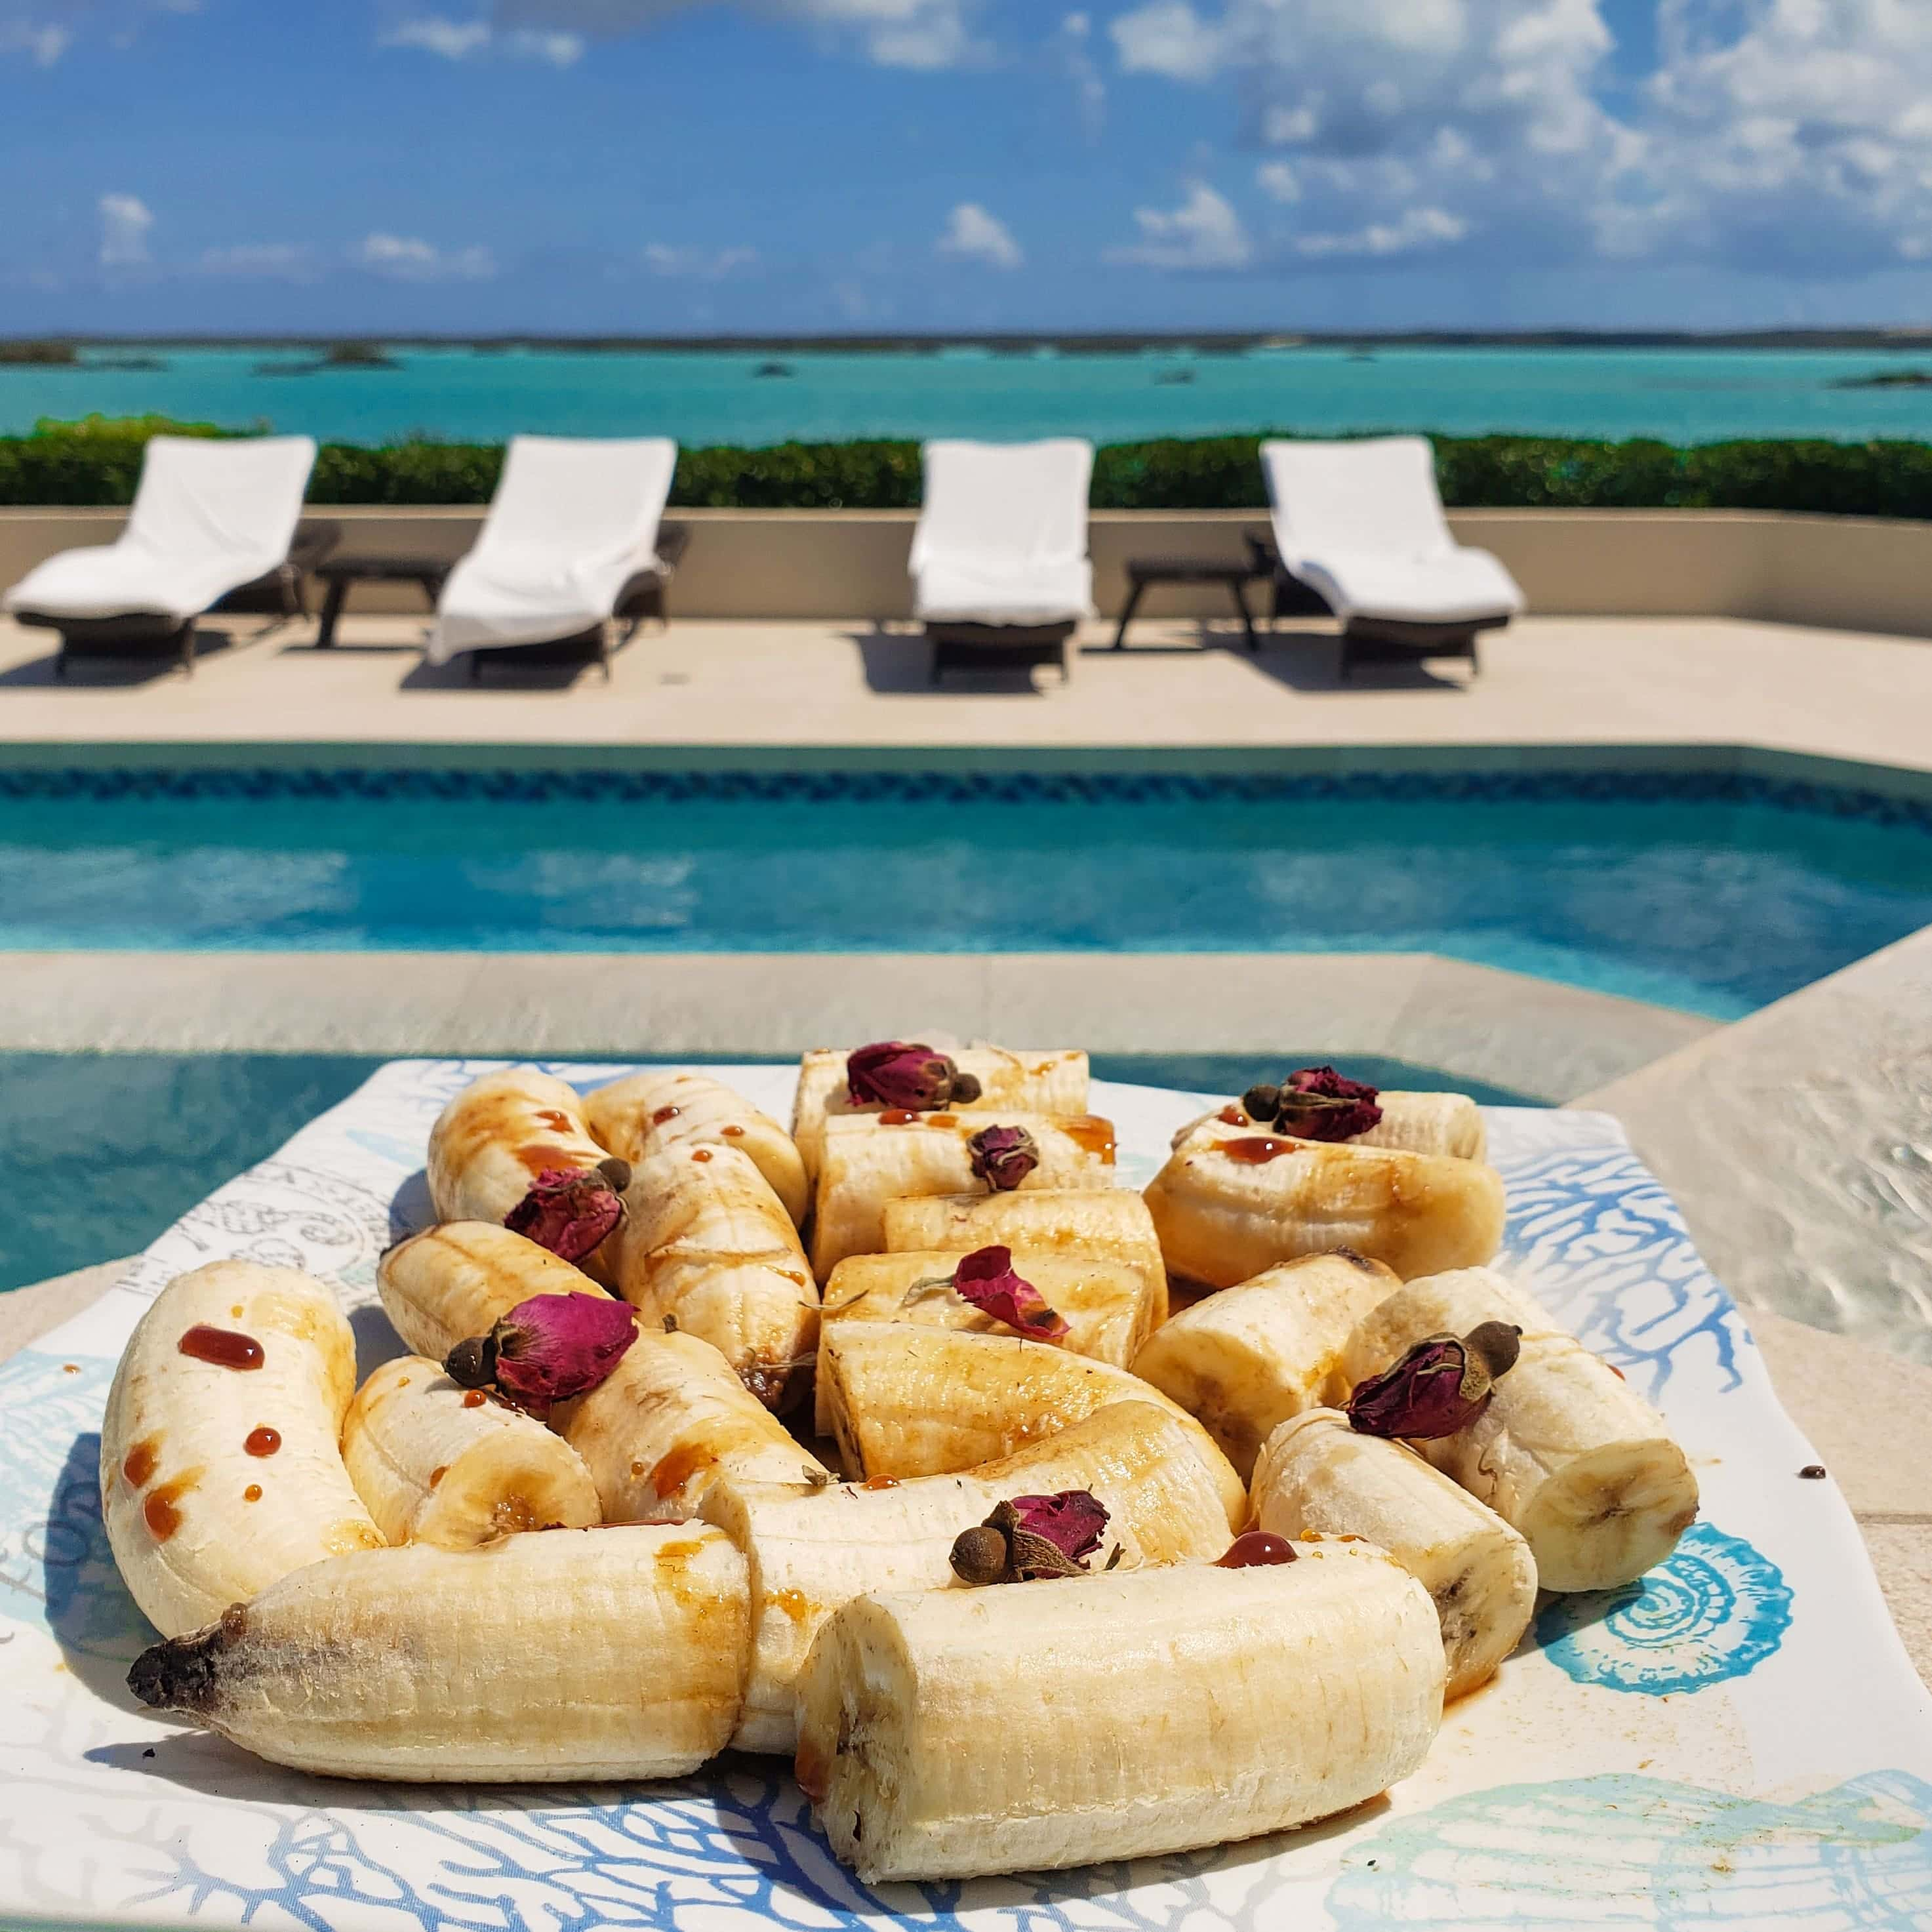 A plate of a banana-based food placed near an outdoor pool overlooking the ocean.